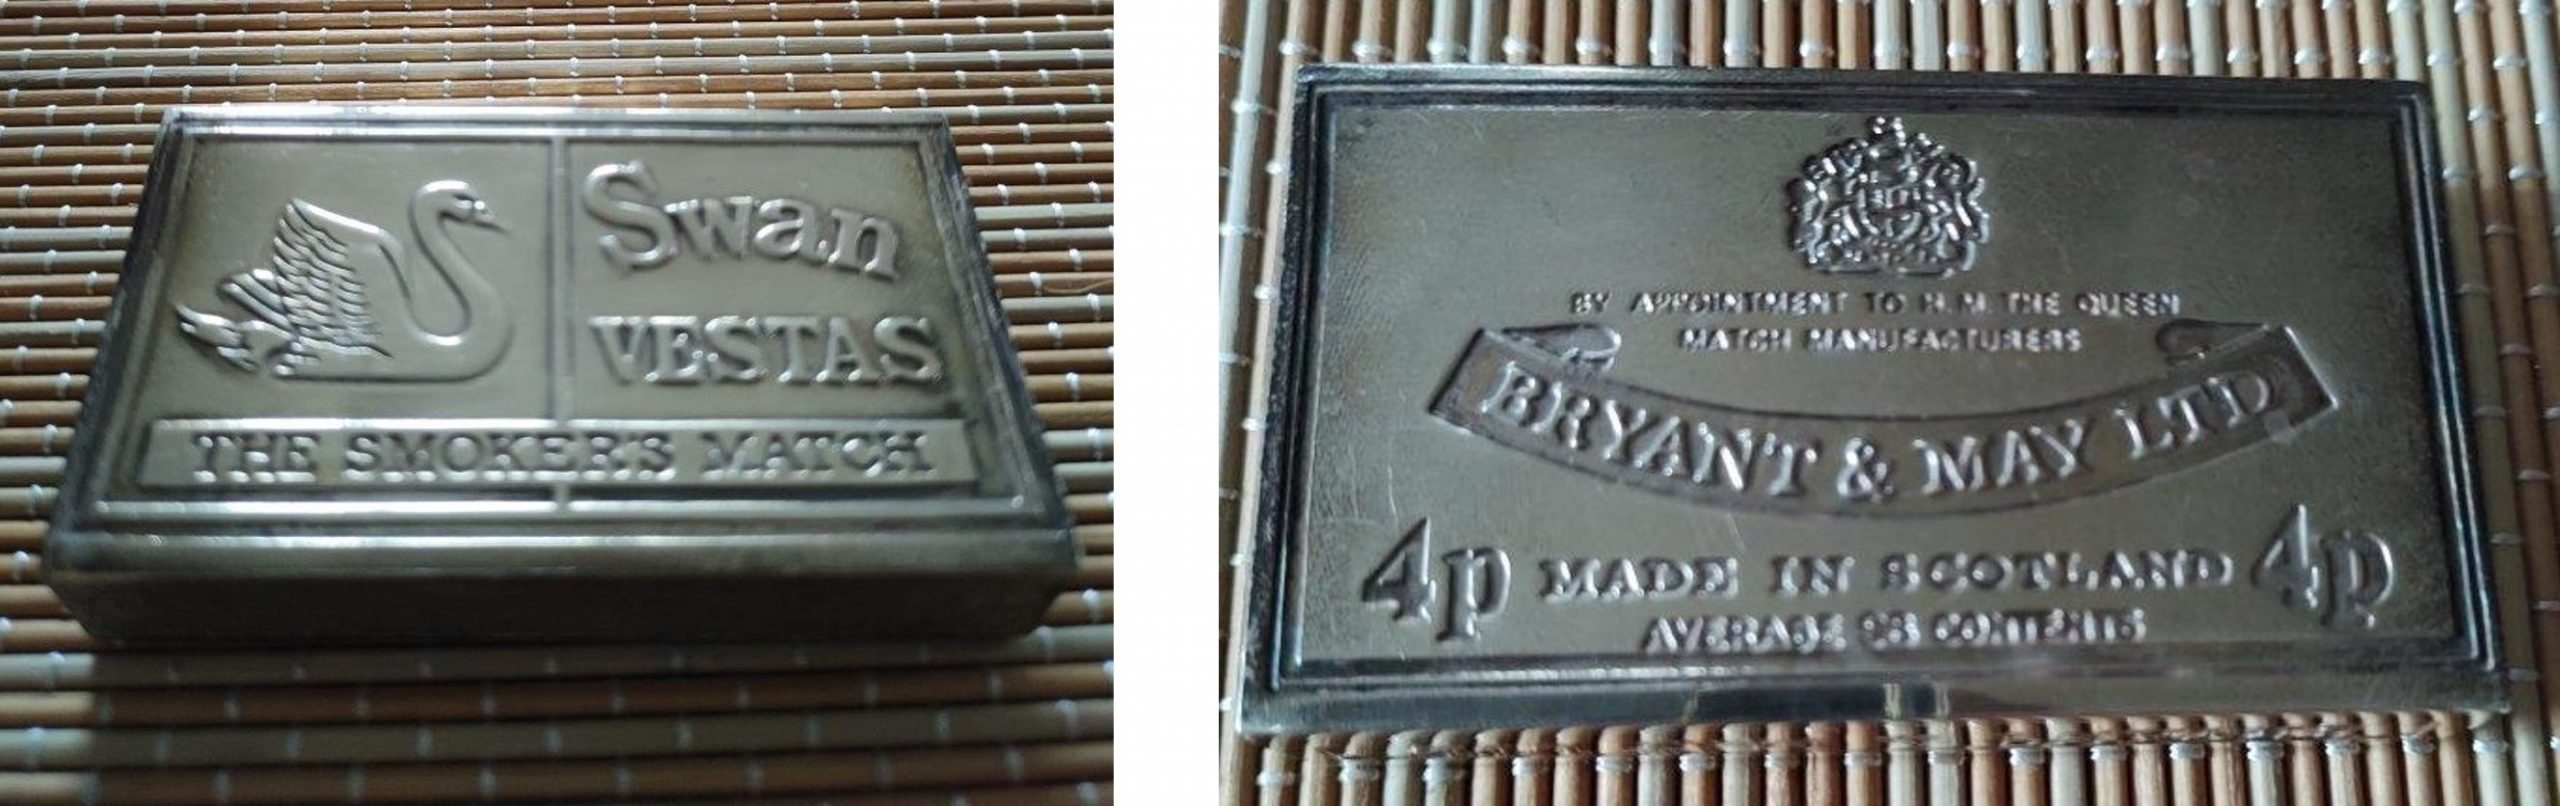 Solid silver Swan Vesta grip, front and back, 75mm long x 44mm wide x 15mm high